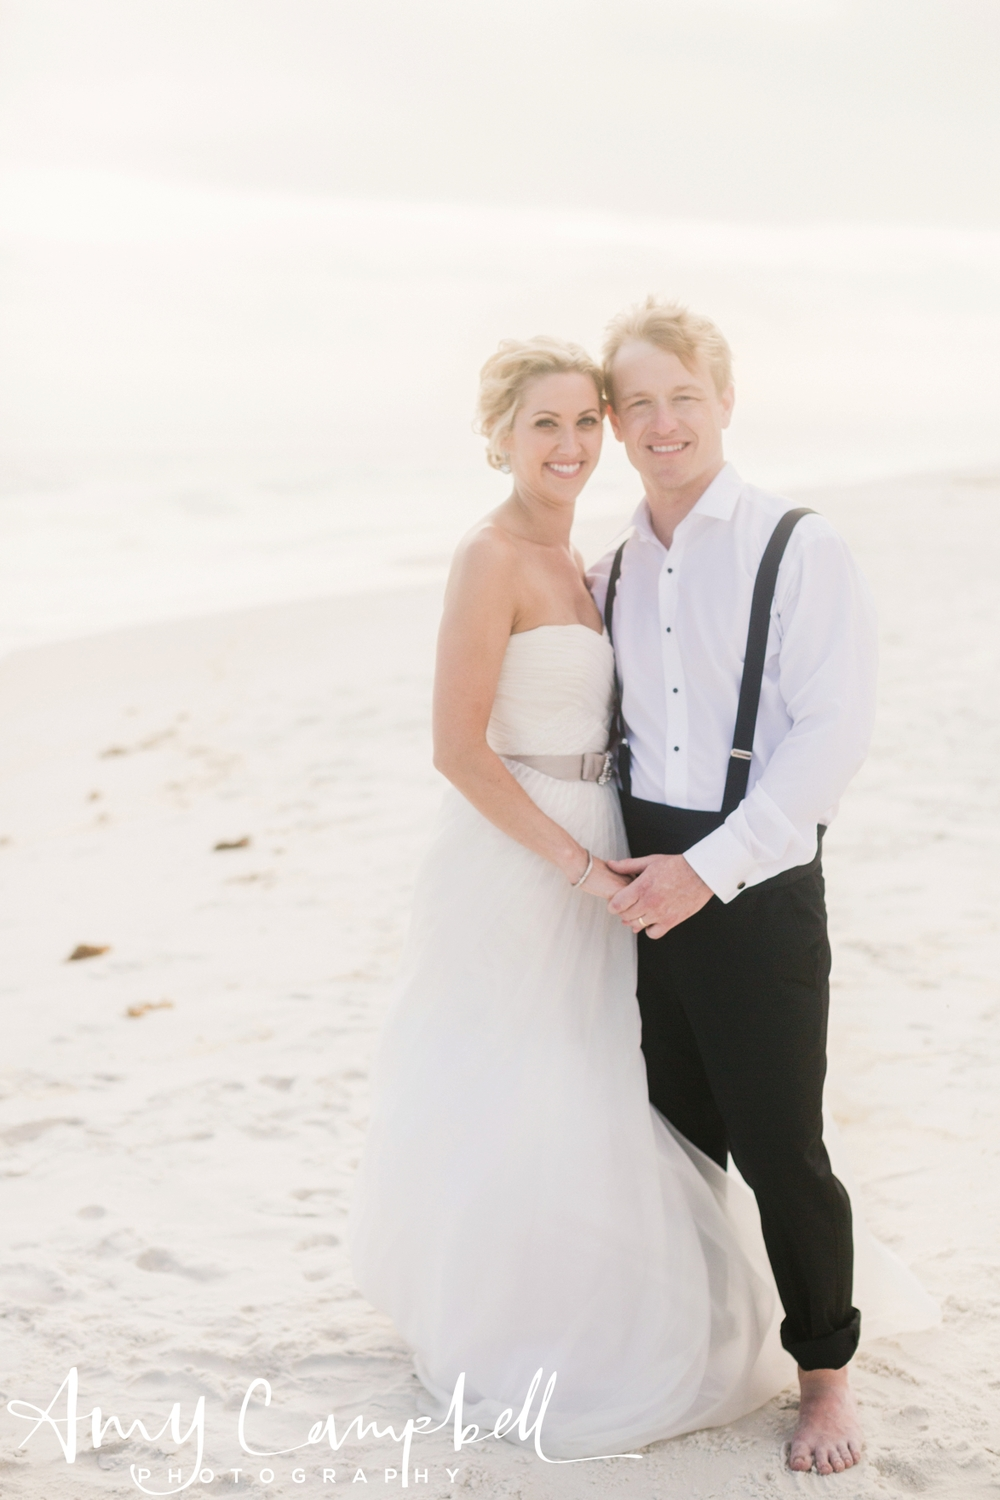 emilyreed_wed_blog_amycampbellphotography_0072.jpg